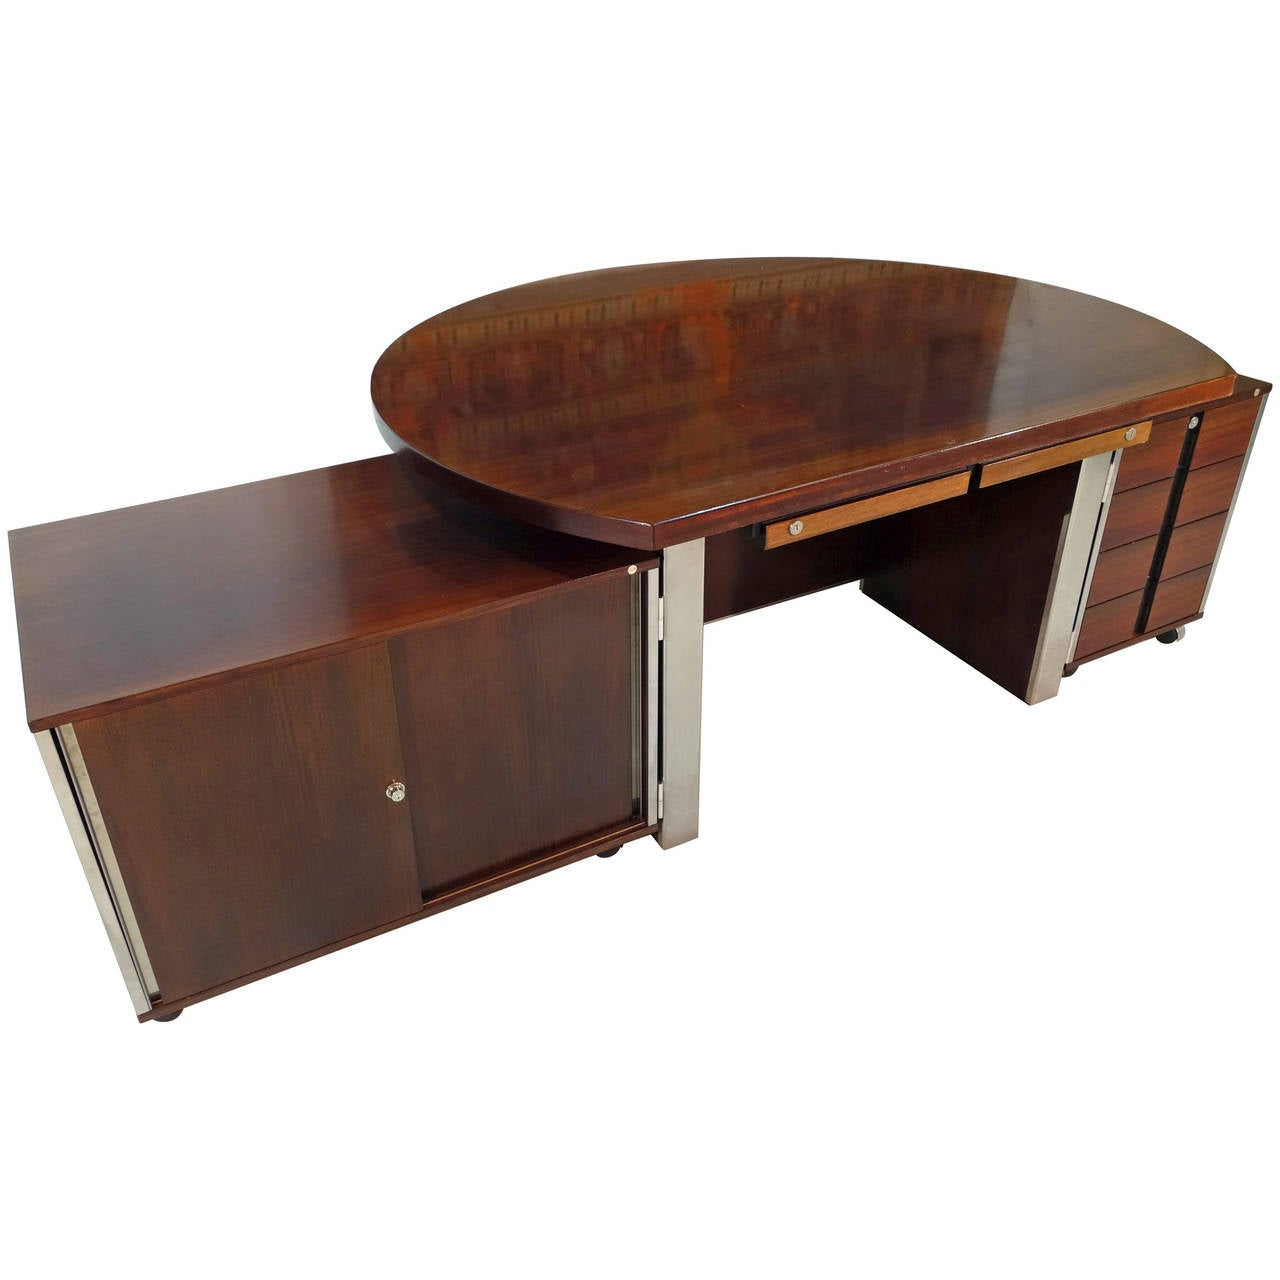 Large desk by mim at 1stdibs - Archives departementales 33 tables decennales ...